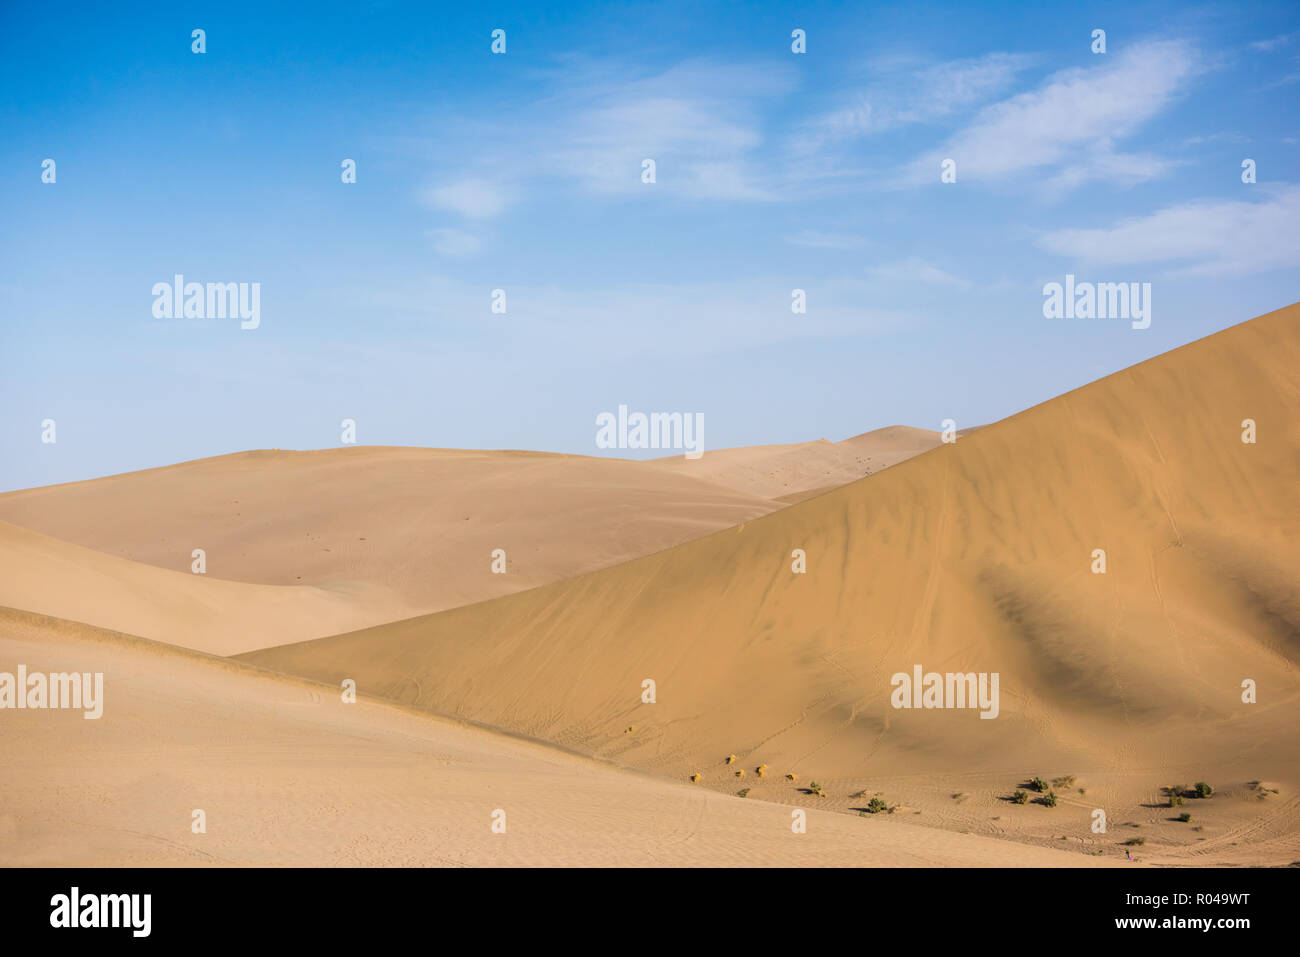 Desert sand dunes with blue sky background. Beautiful curves of deserts - Stock Image